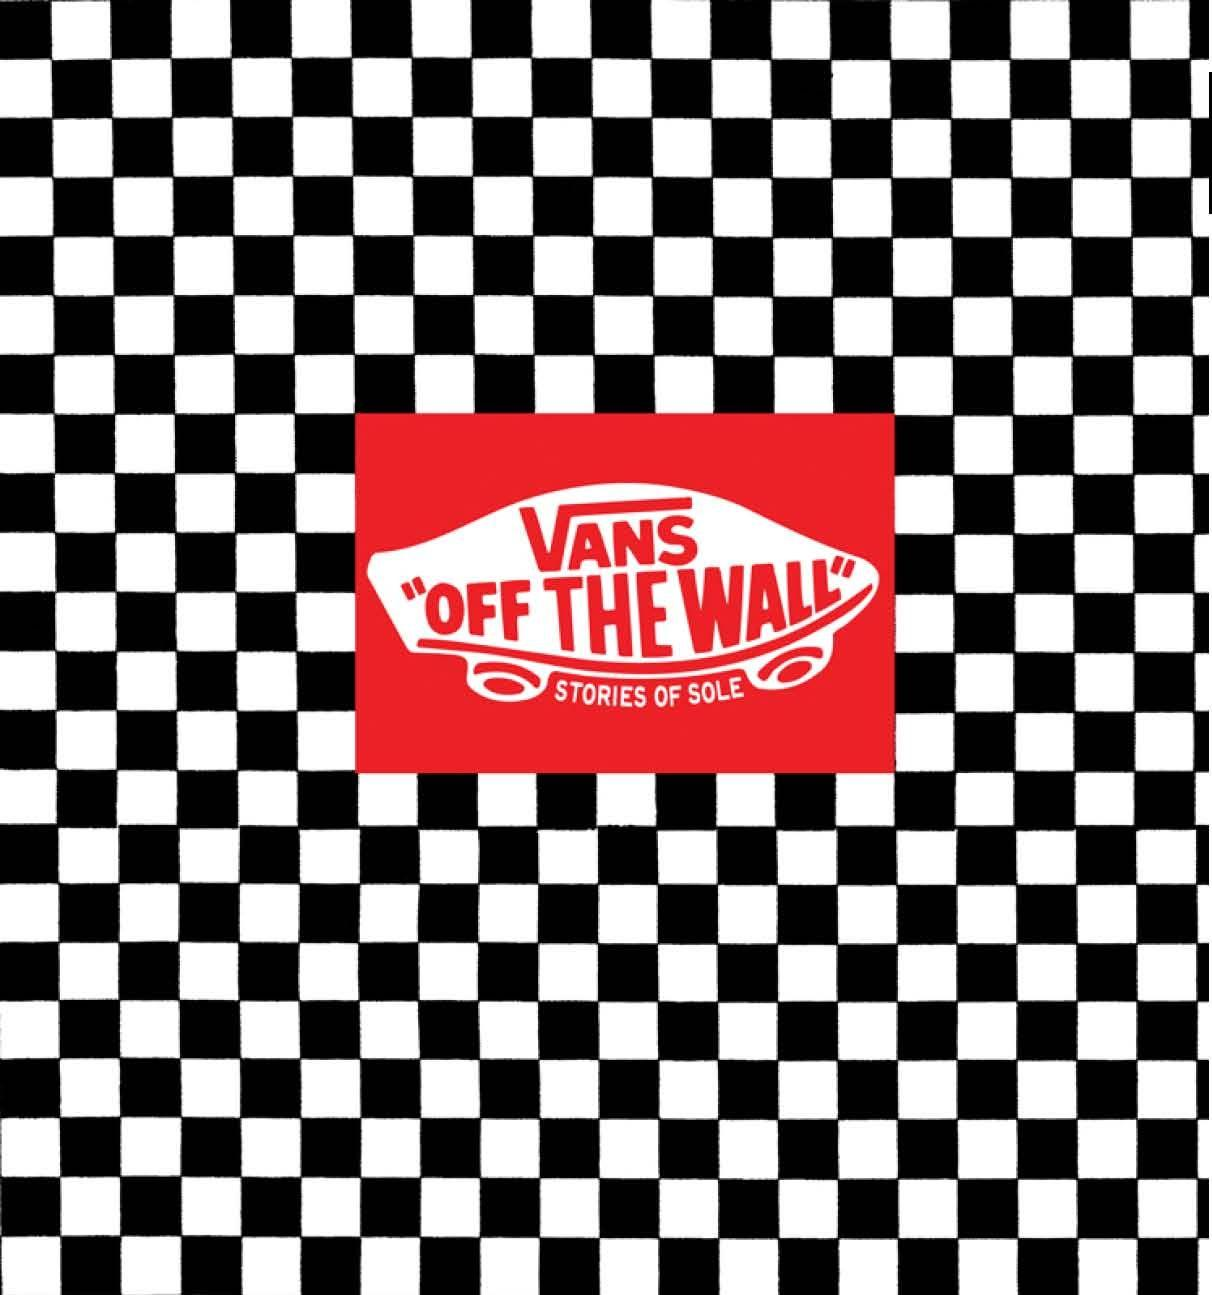 5cfd33f733 Vans Off The Wall Wallpaper Iphone - Home Decor